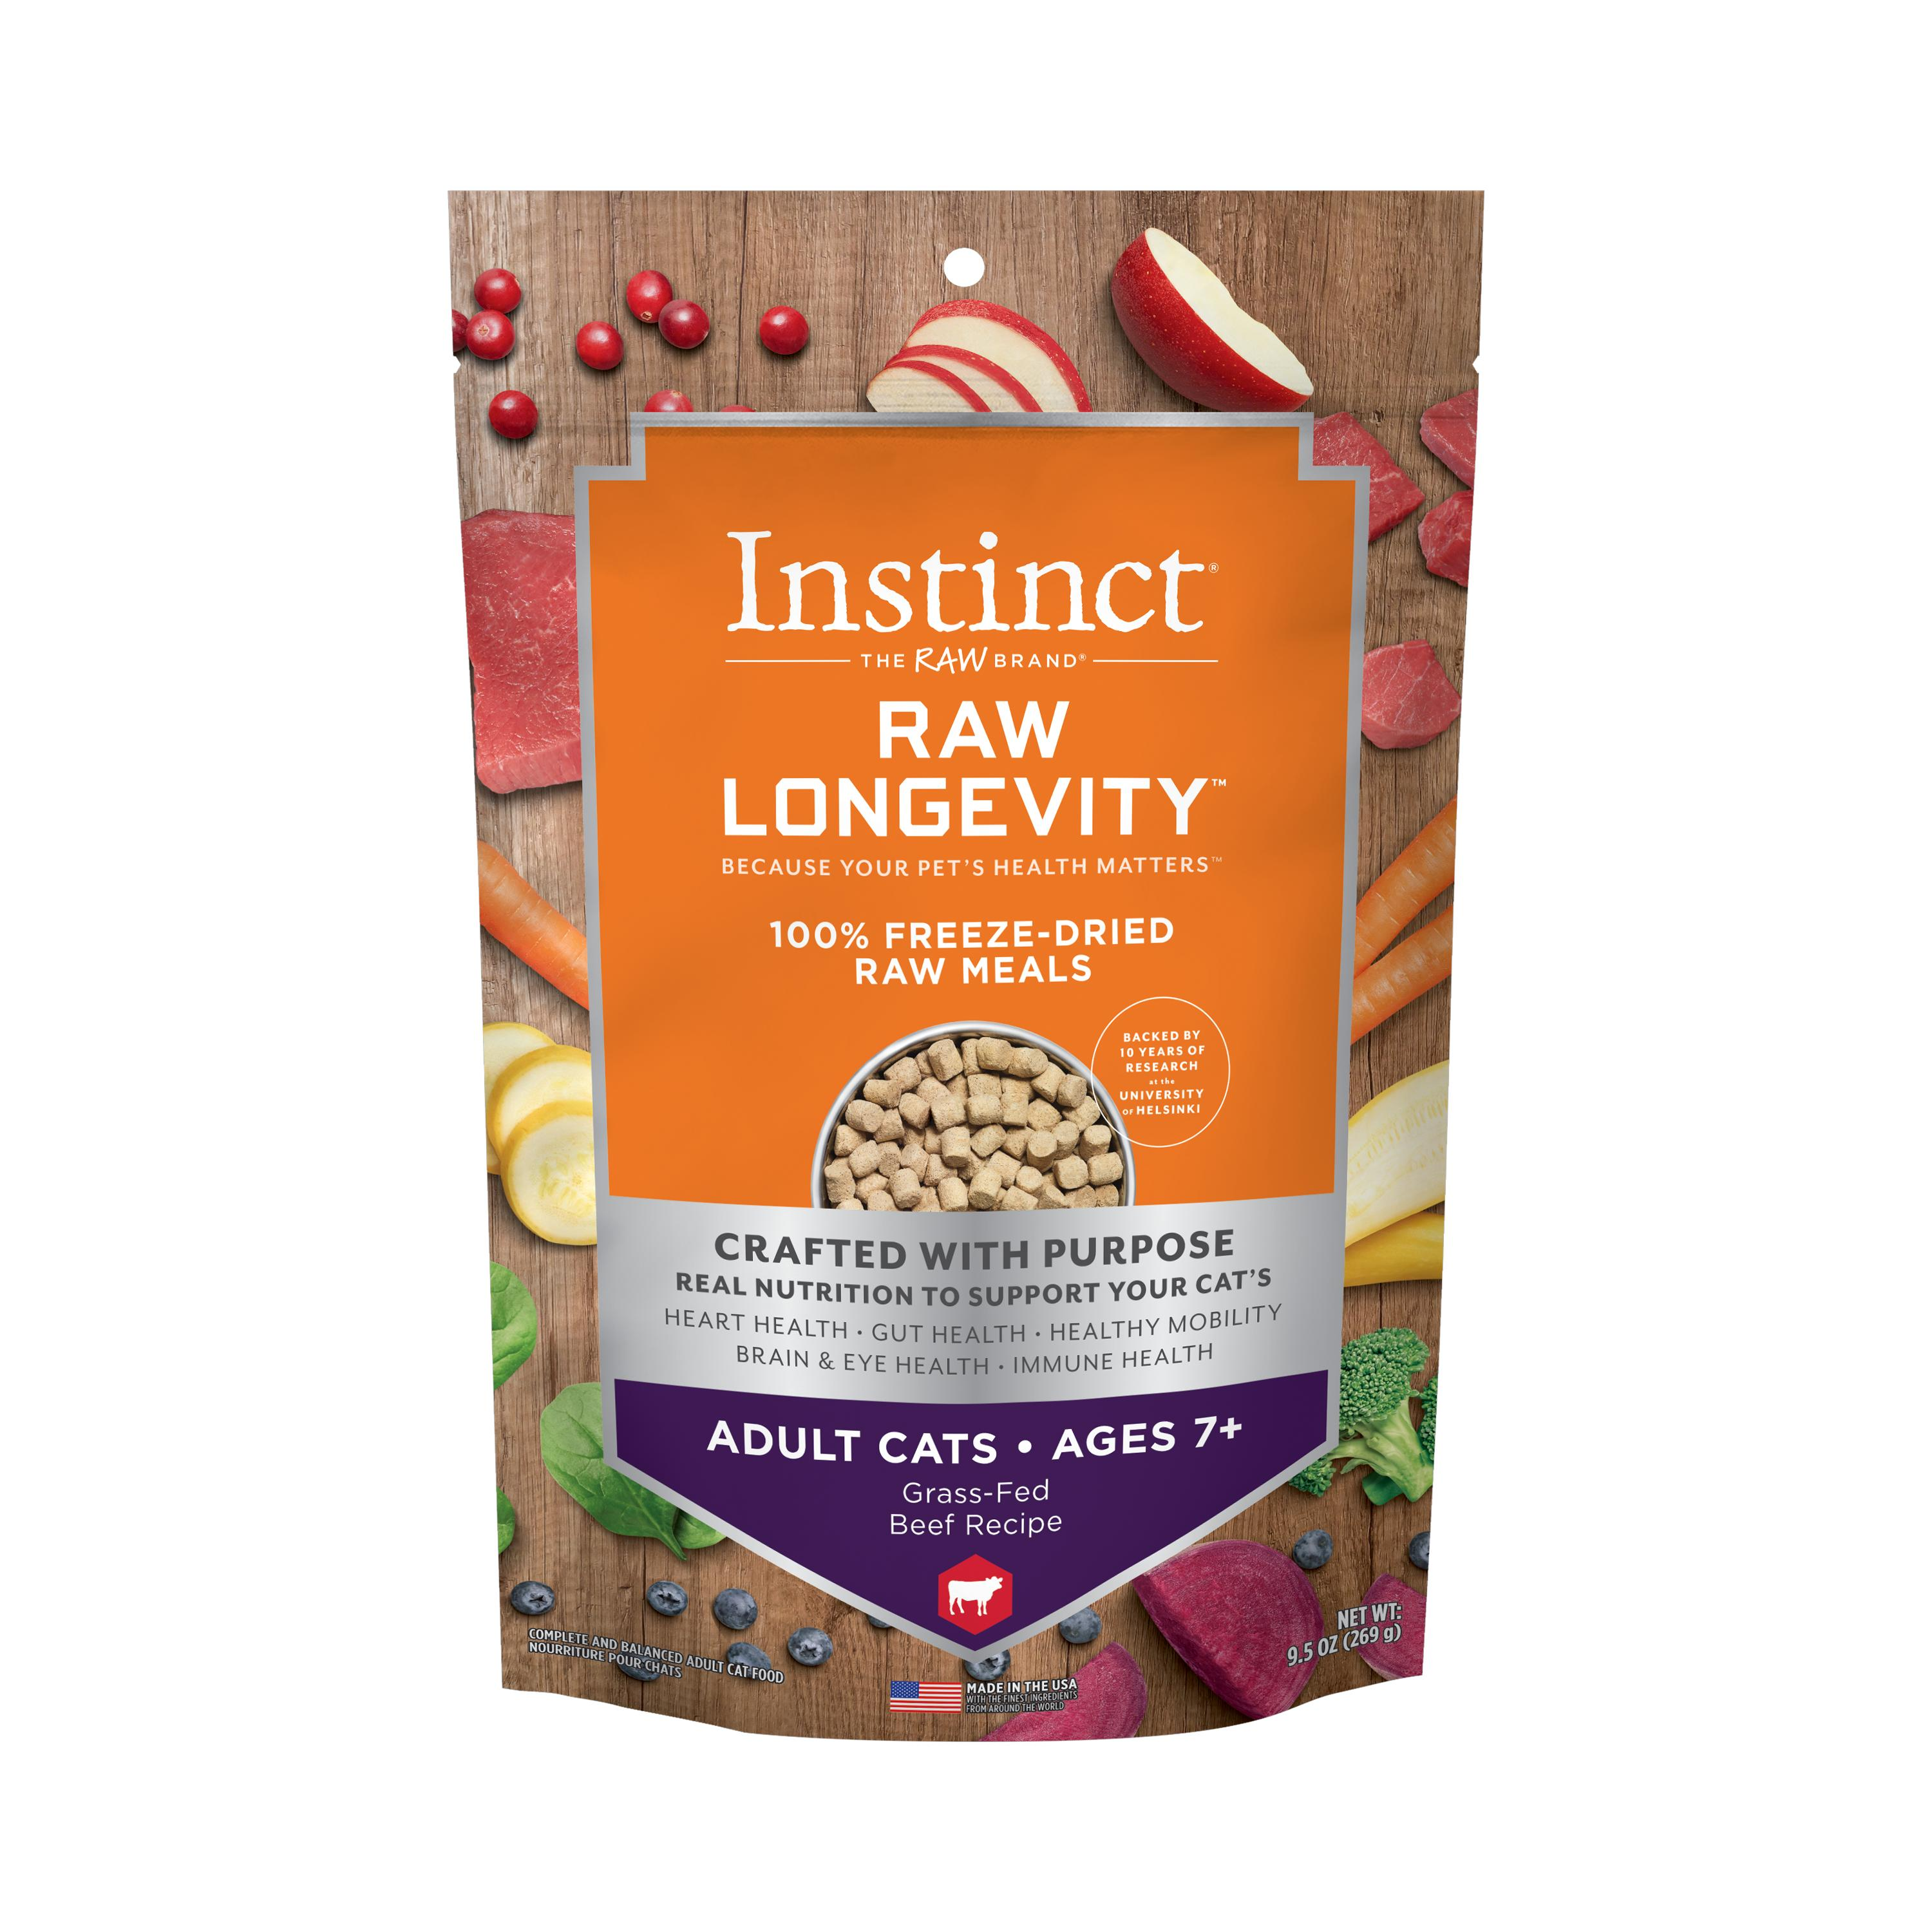 Instinct by Nature's Variety Raw Longevity Grass-Fed Beef Age 7+ 100% Freeze-Dried Cat Food, 9.5-oz